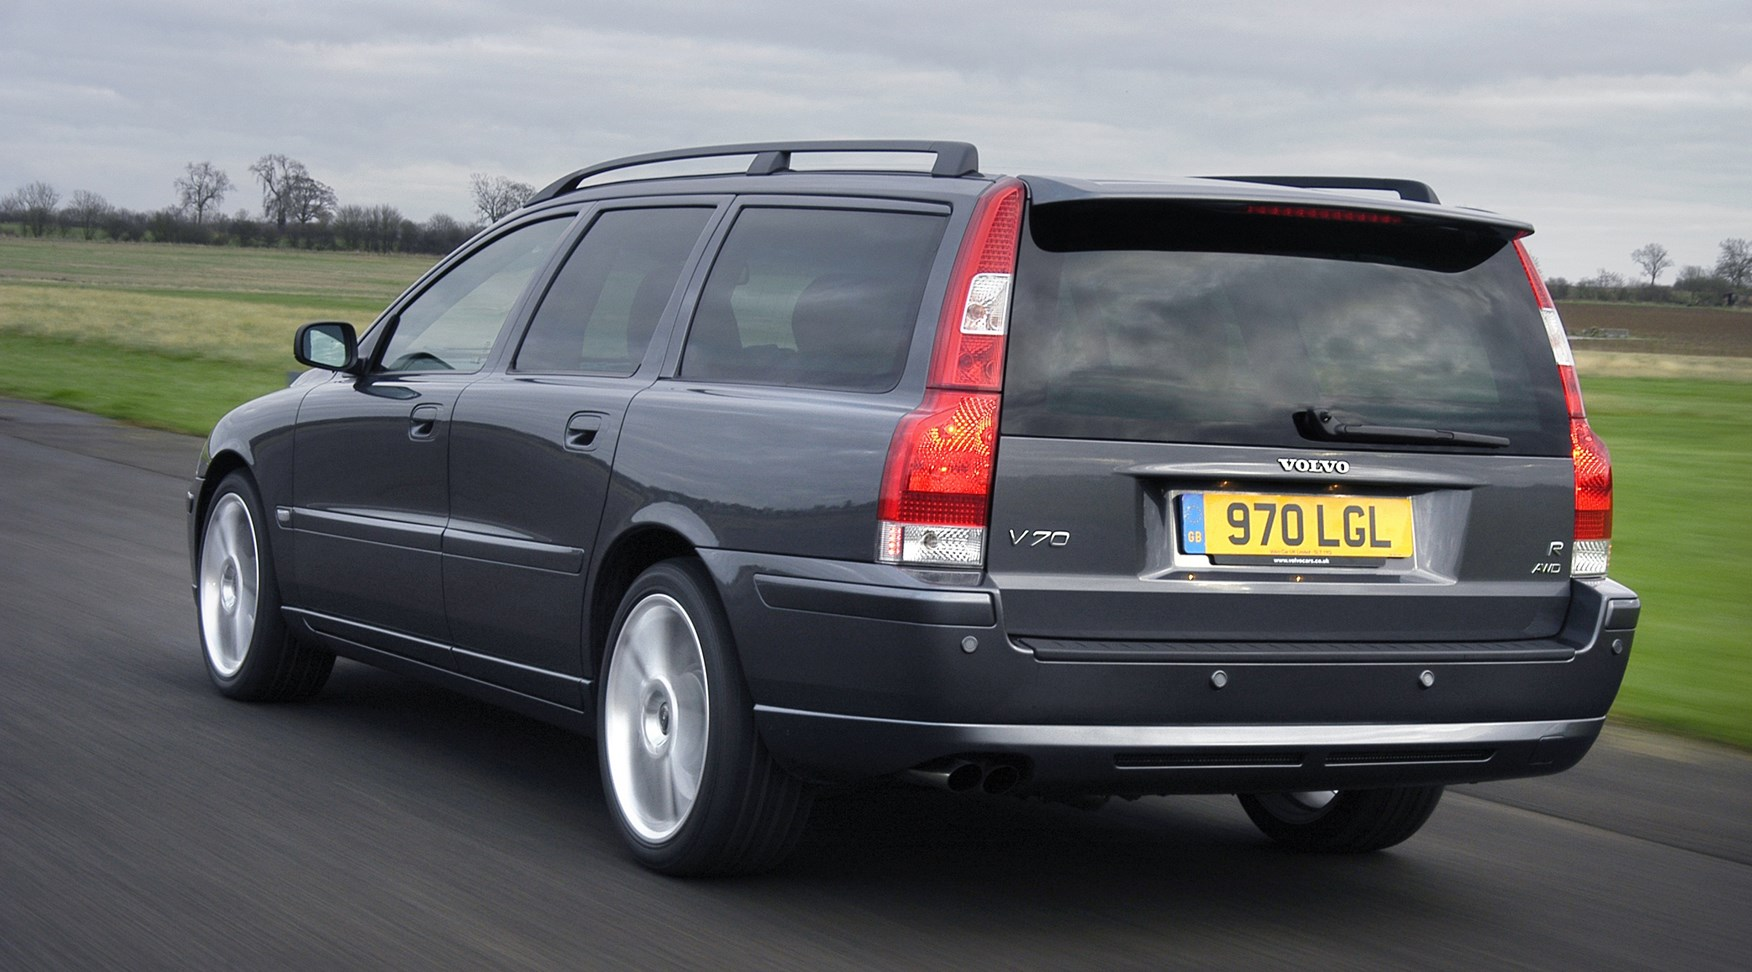 Volvo V70 Estate (2000 - 2007) Features, Equipment and Accessories | Parkers